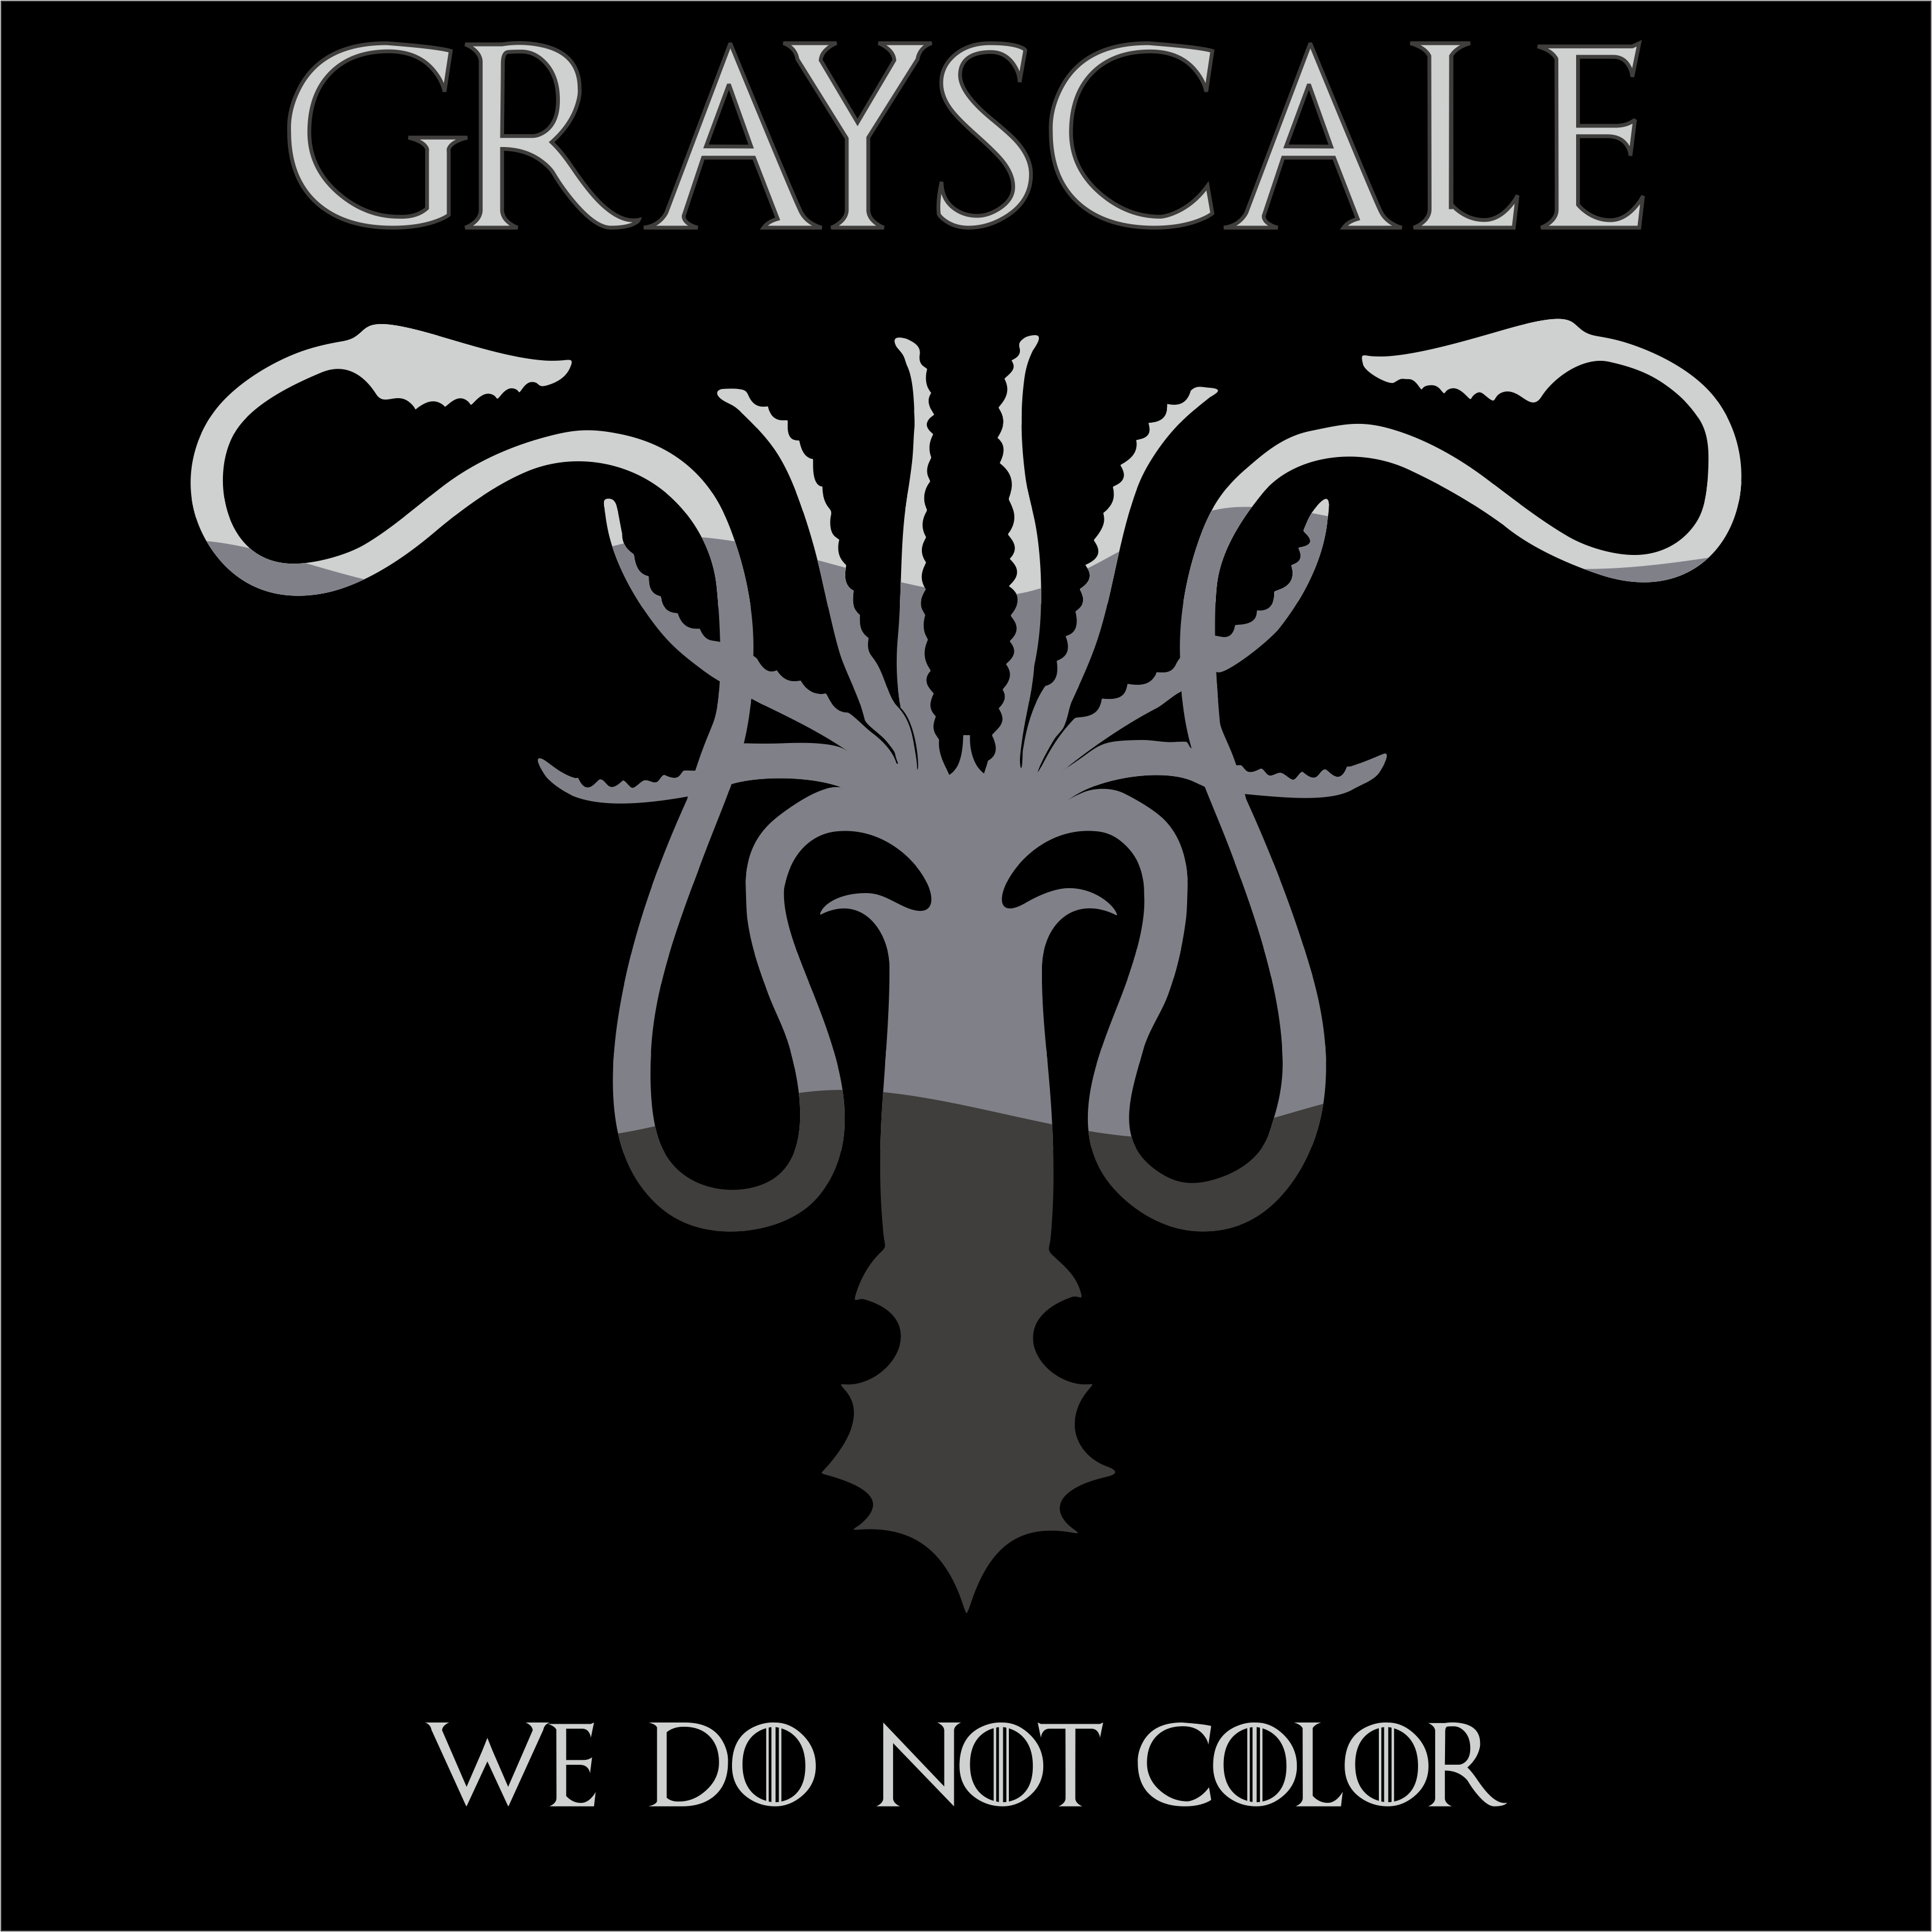 House Grayscale